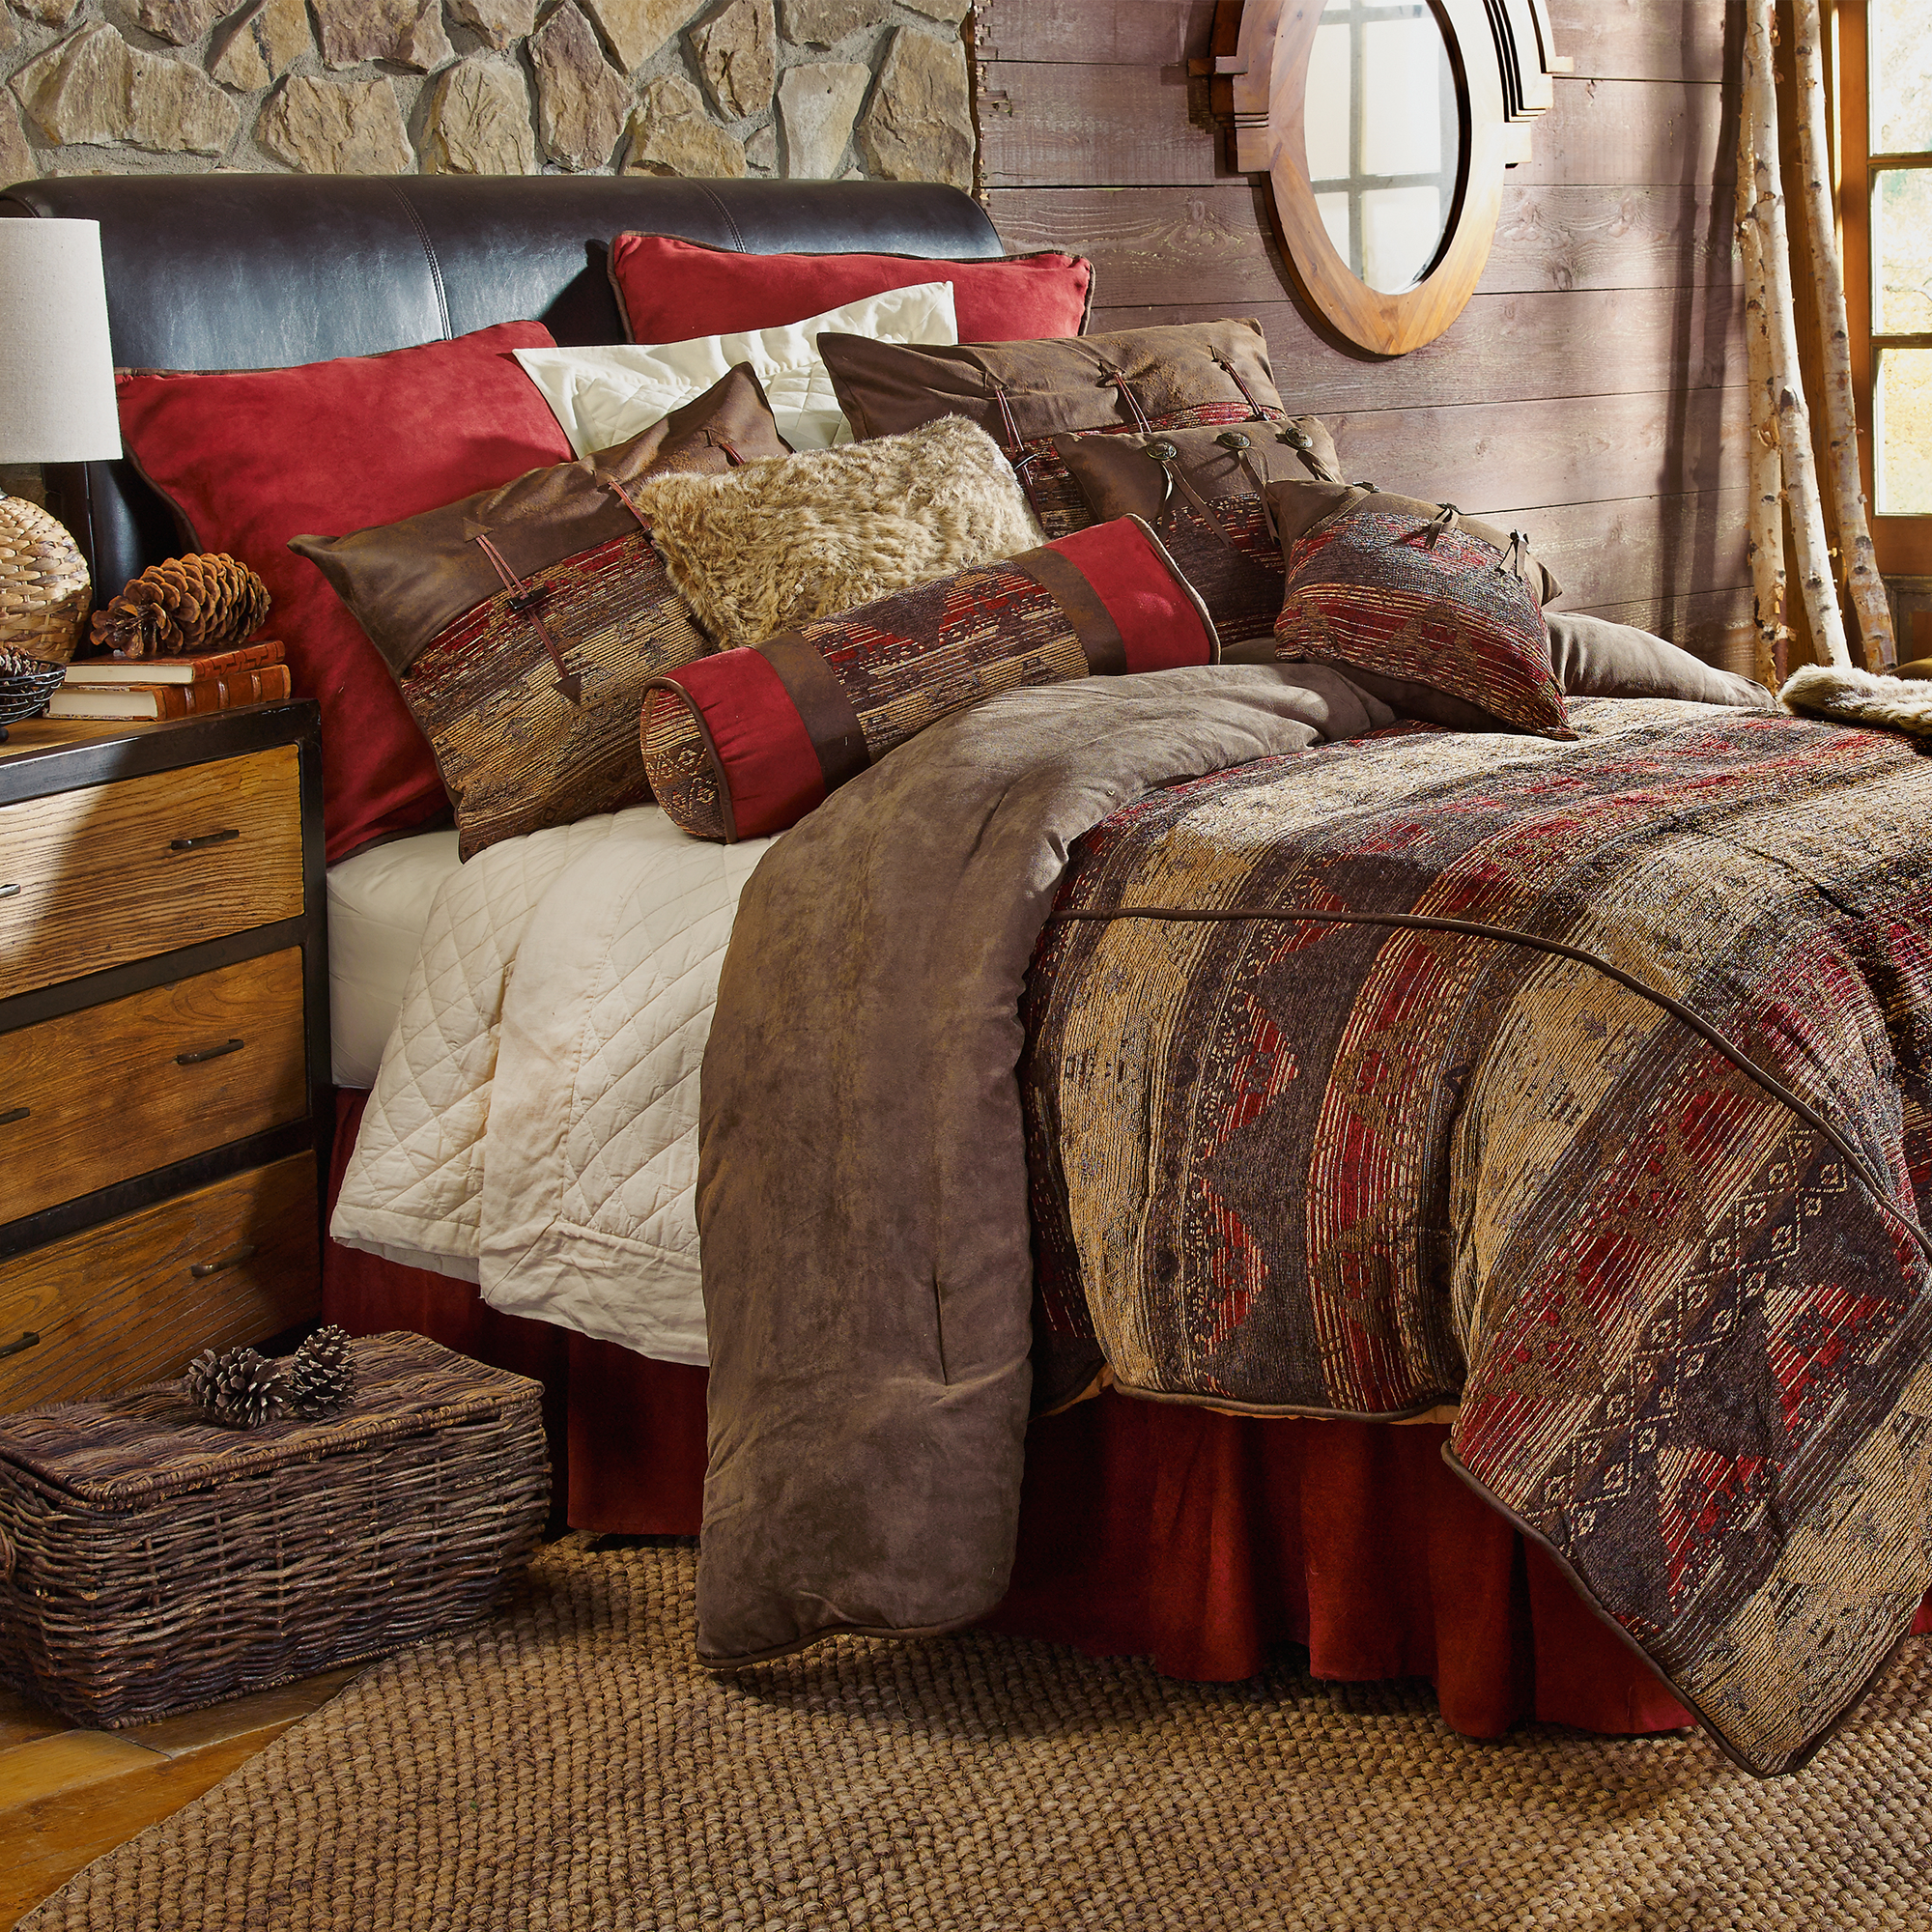 LG1830 - Sierra Bedding Set - Western Bedding by HiEnd Accents